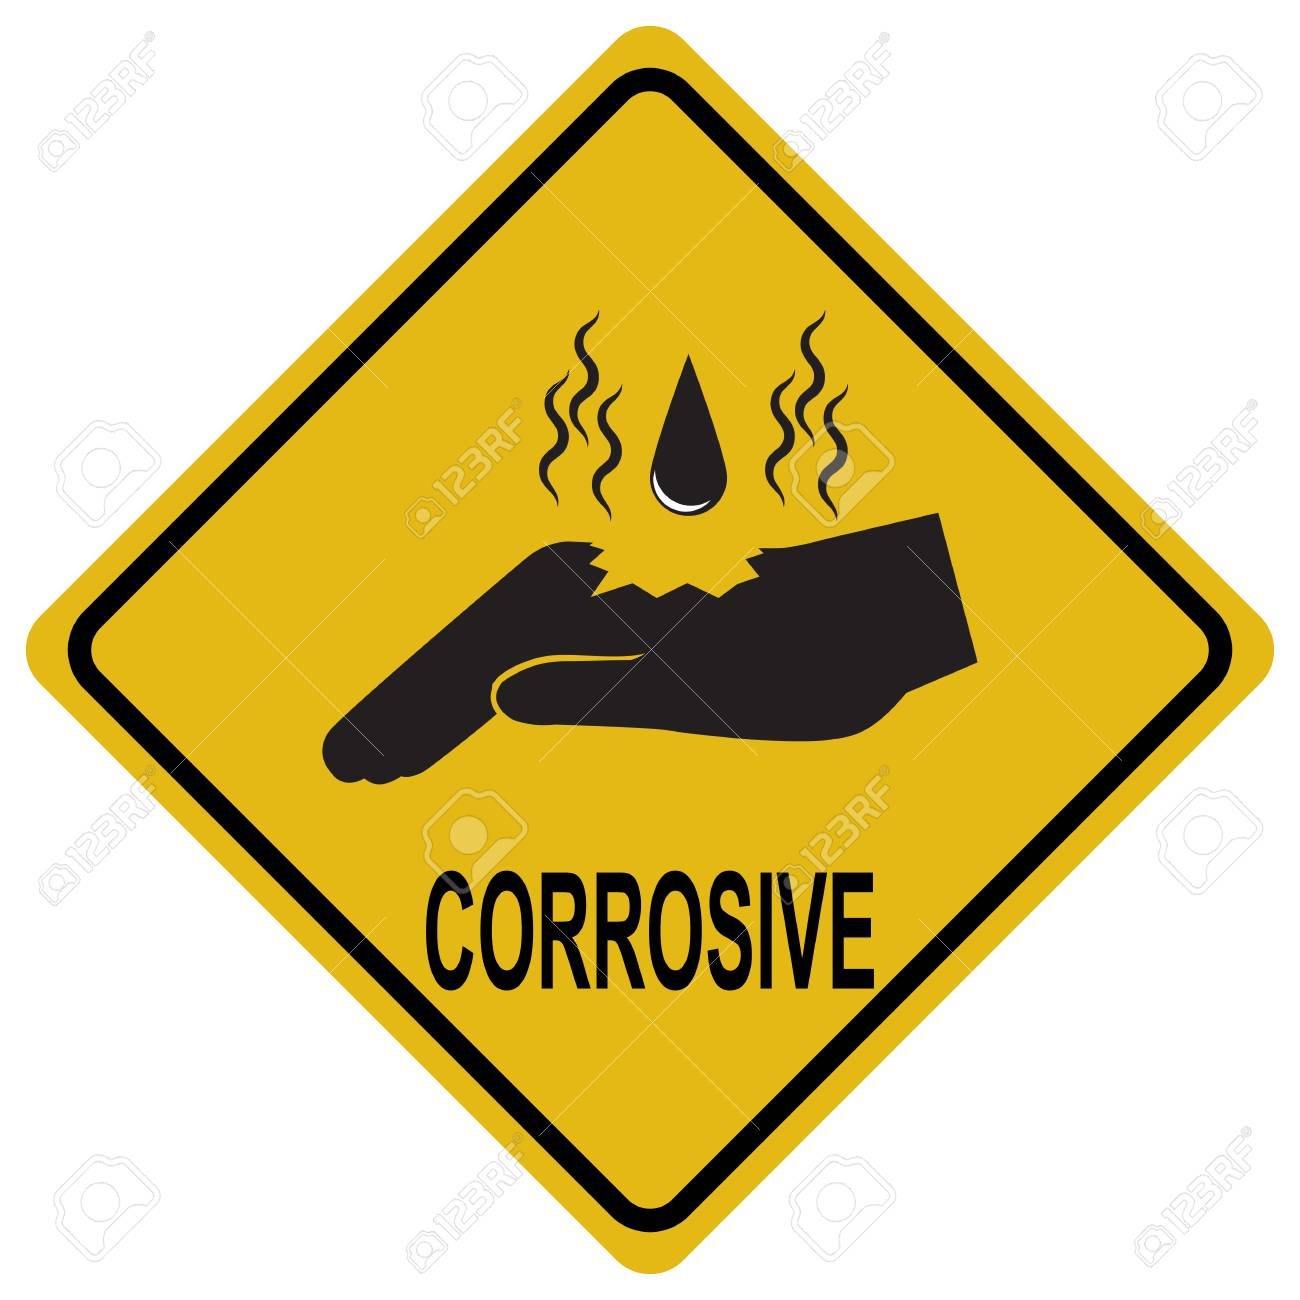 Hand corrosive warning sign safety concept royalty free cliparts hand corrosive warning sign safety concept stock vector 80975047 biocorpaavc